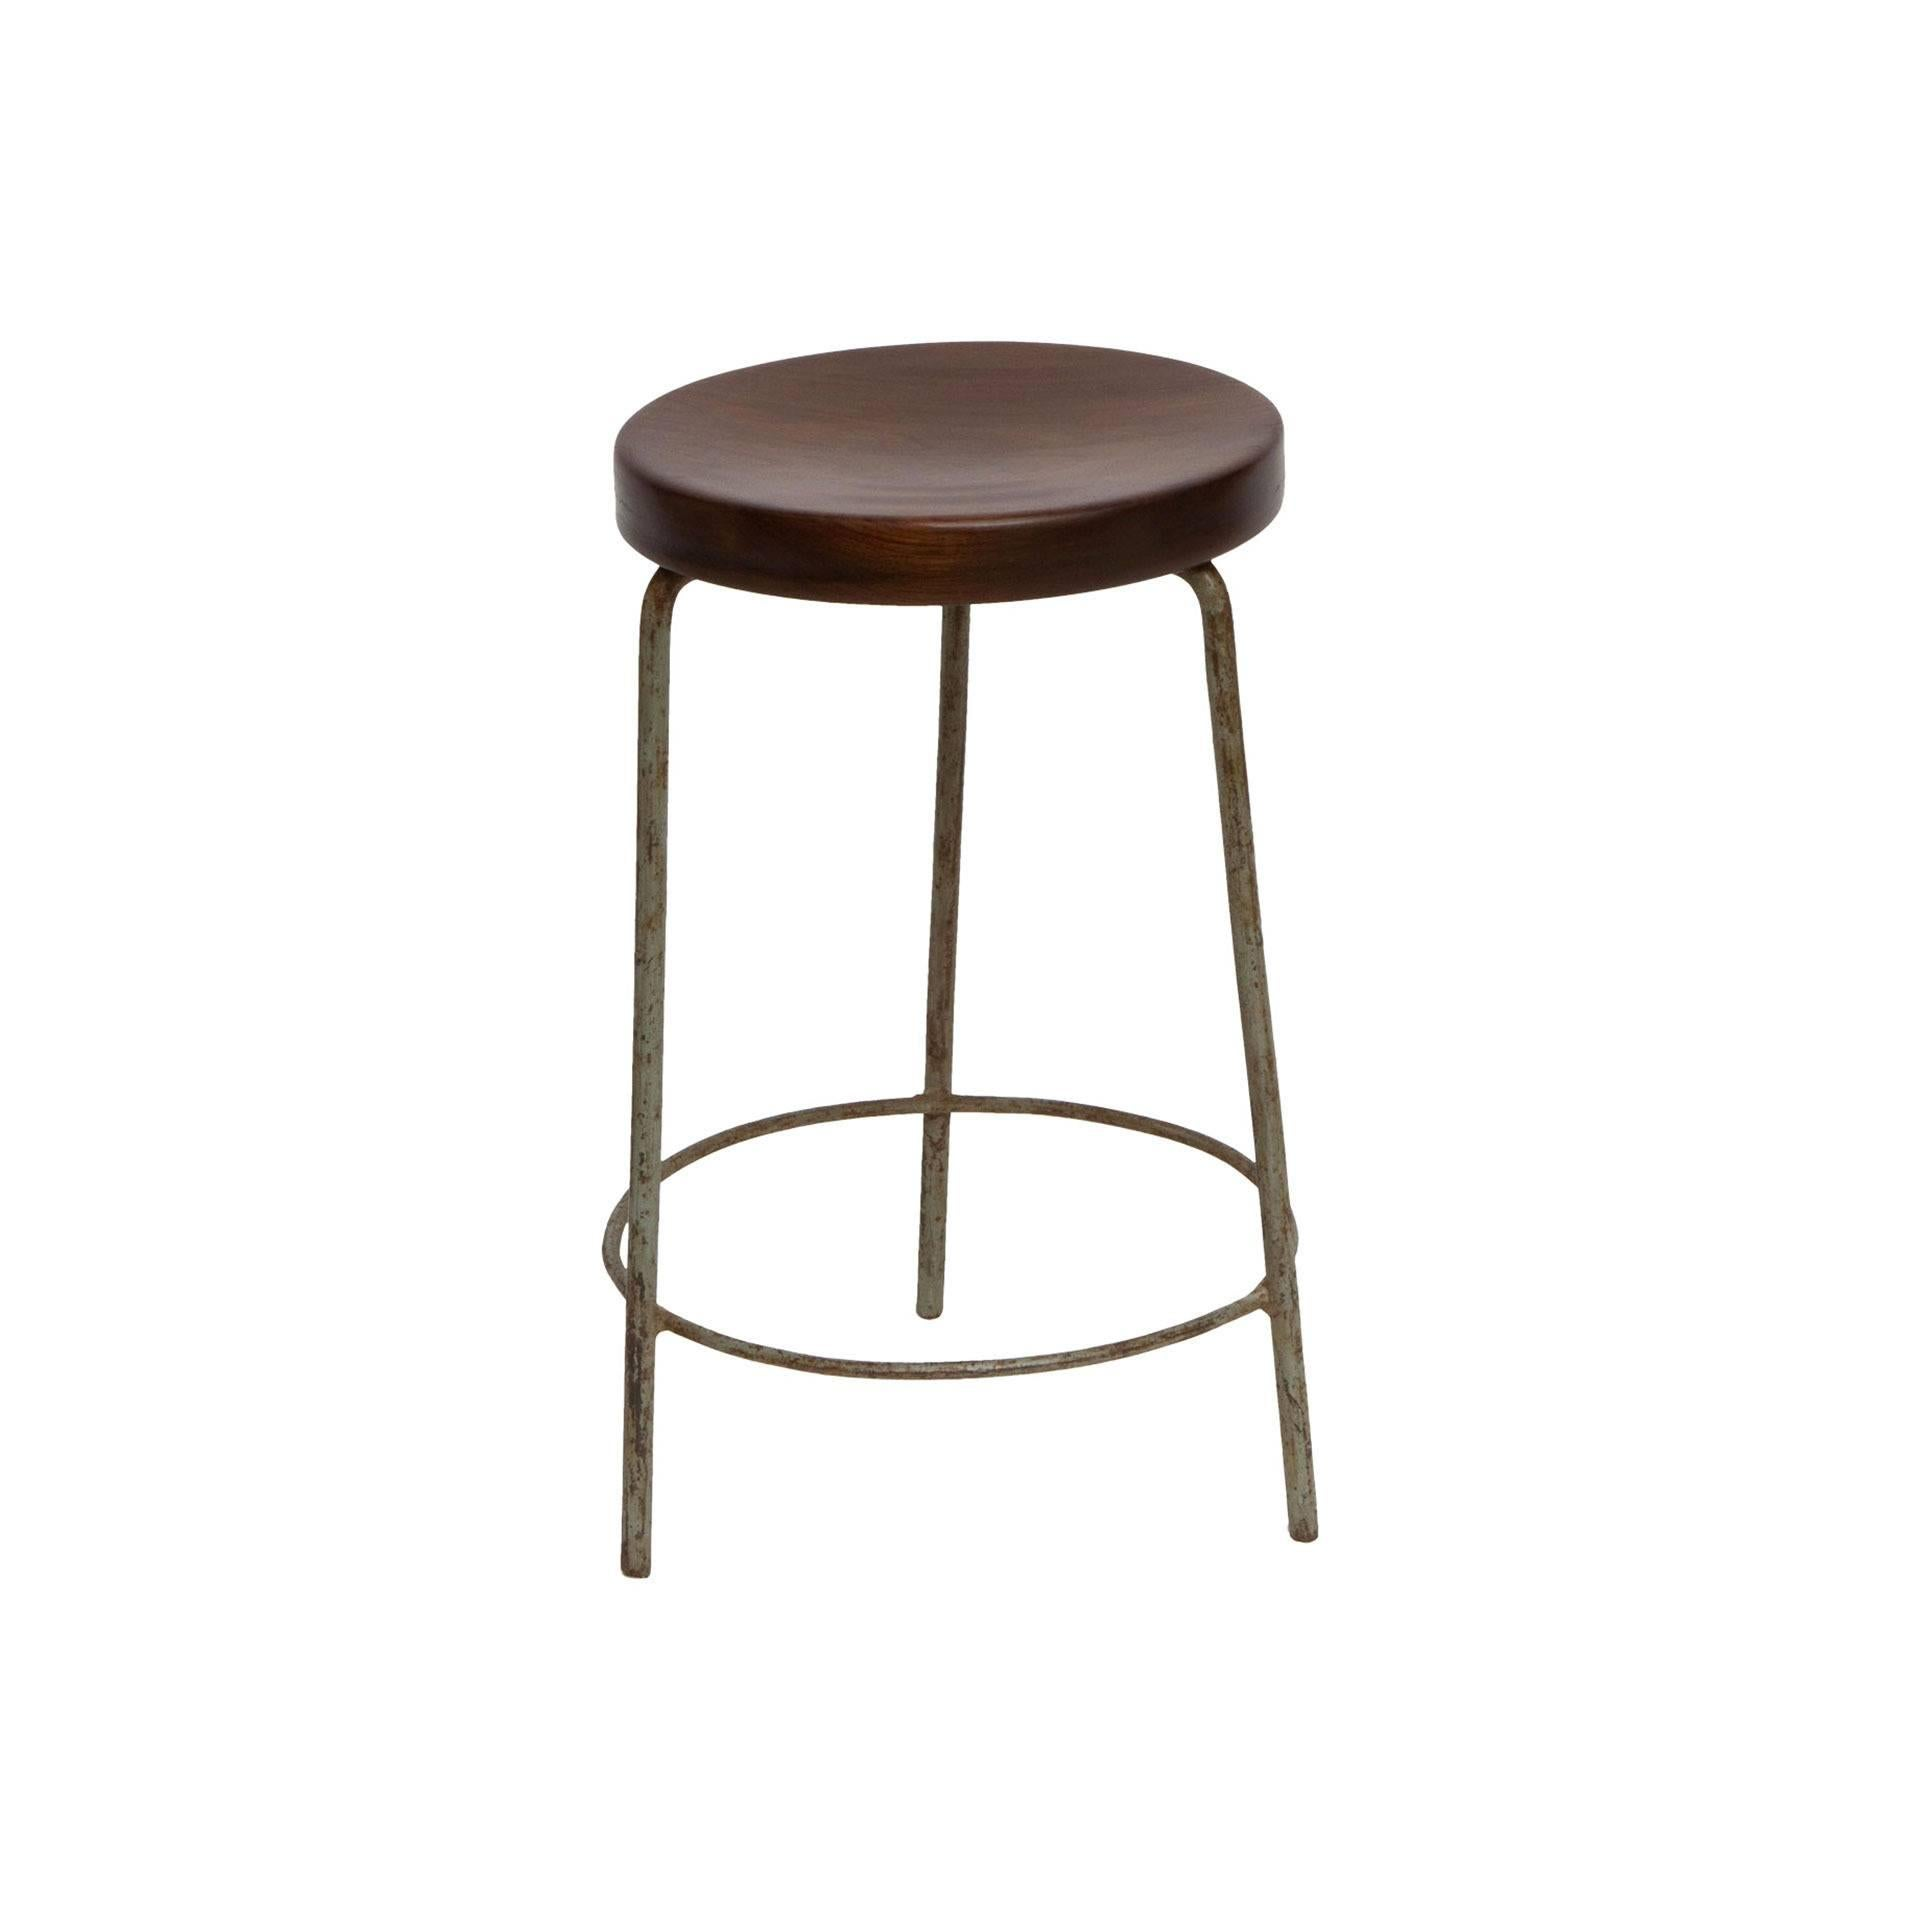 Pierre Jeanneret, Stool from High Court of Chandigarh, circa 1955-1956